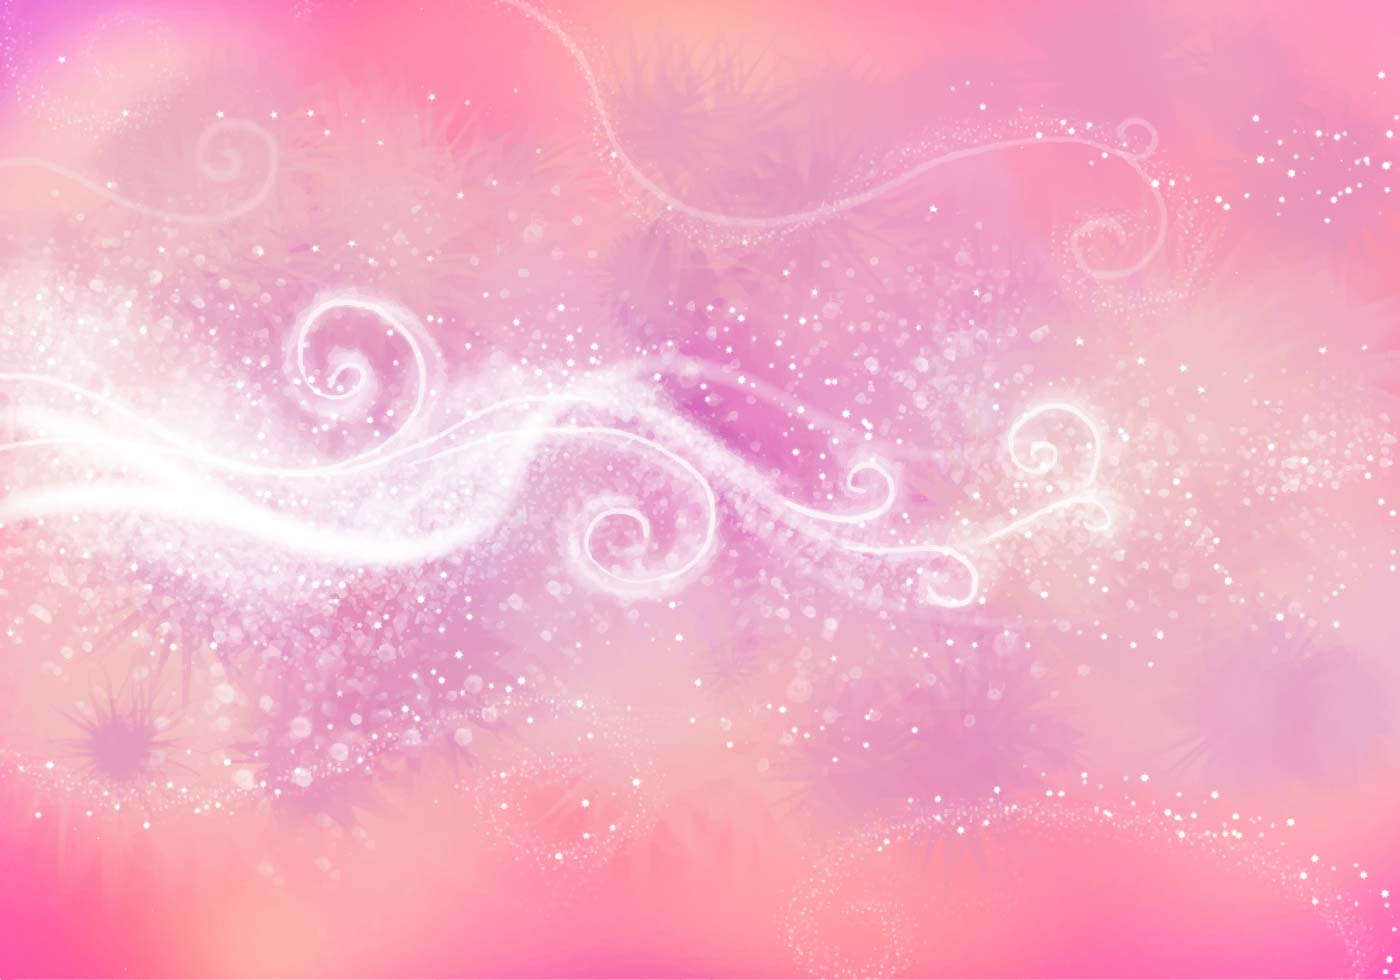 Black Silver Glitter Wallpaper Free Vector Pixie Dust Background Download Free Vector